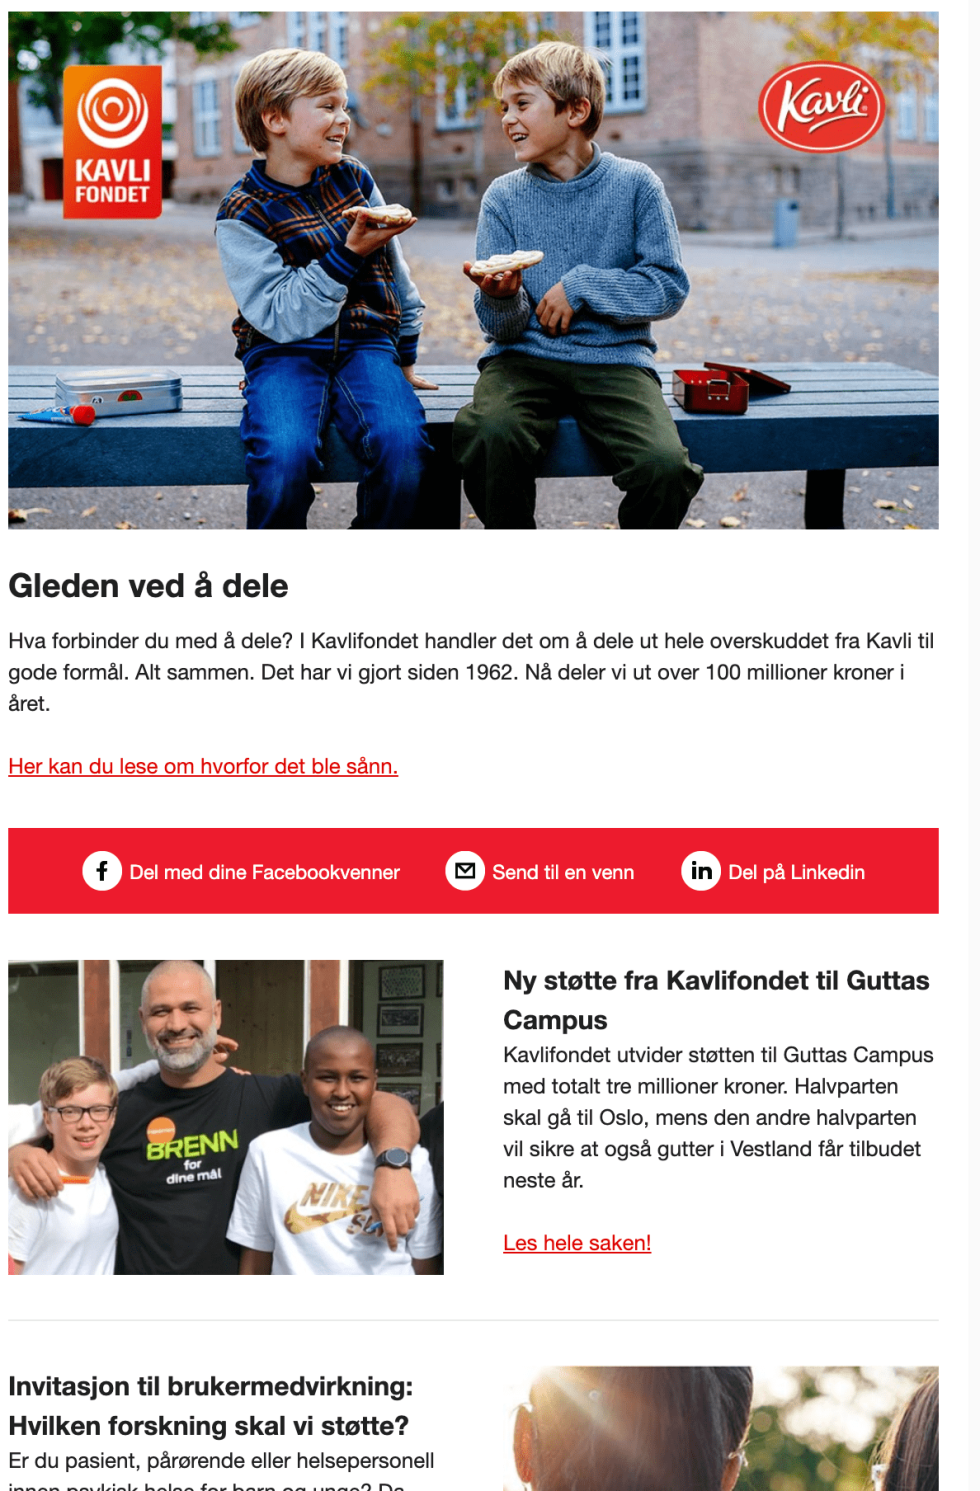 Image of a newsletter for Kavli Fondet